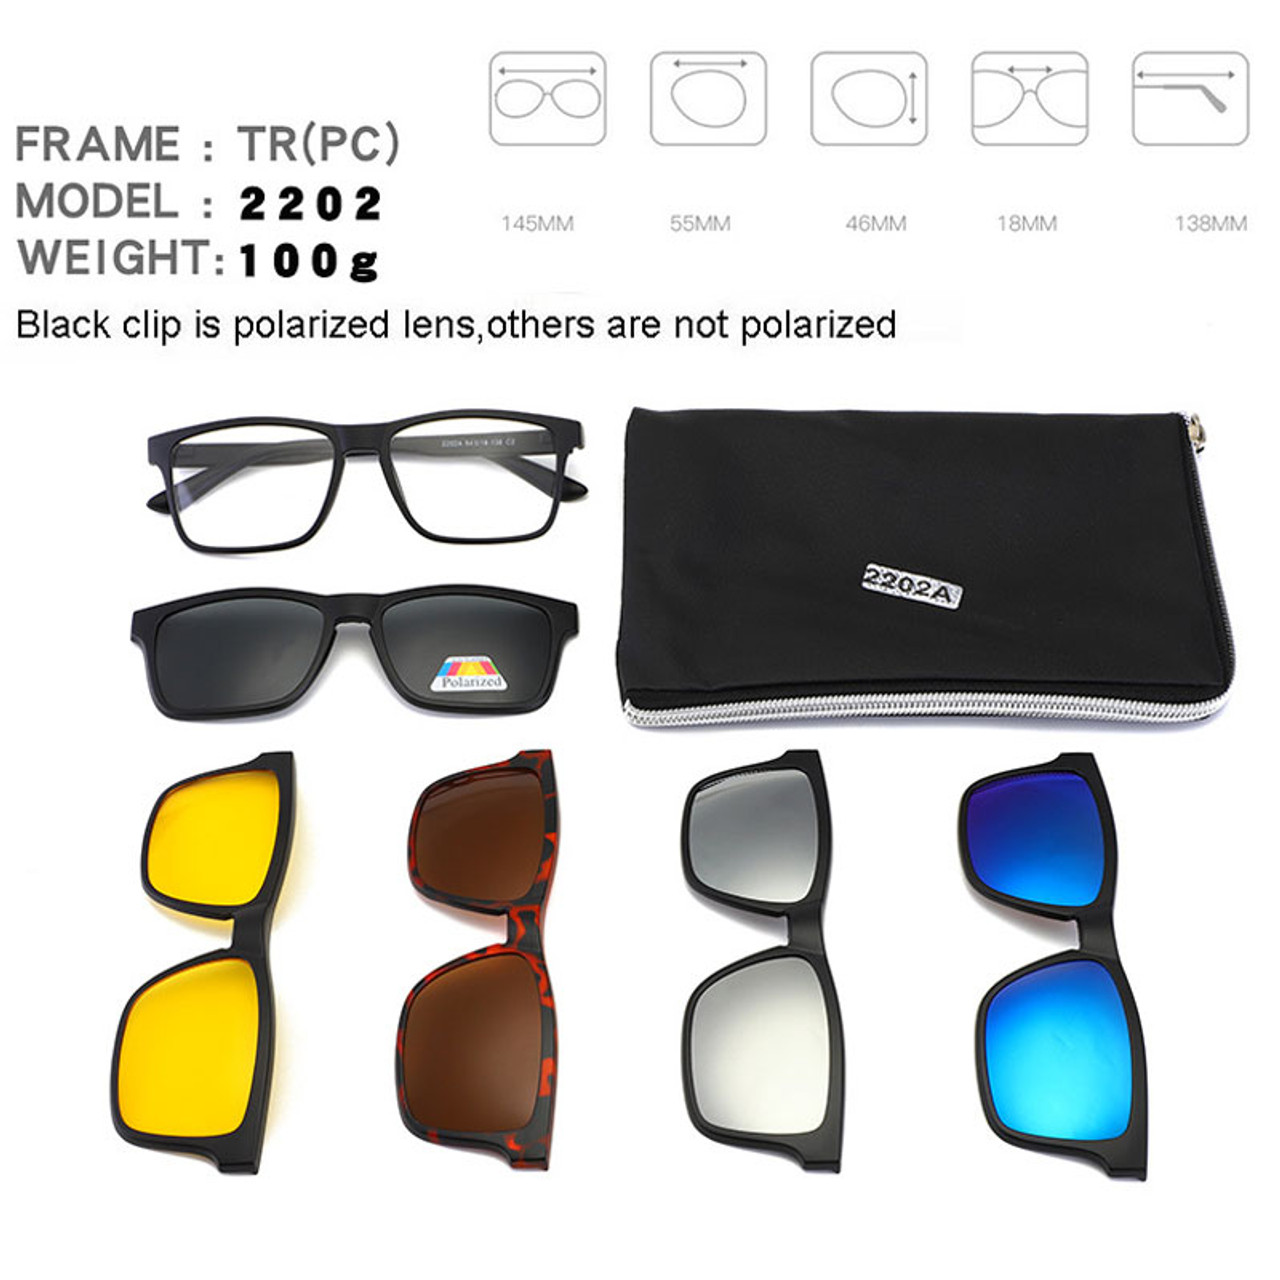 36d761a890df3 ... Square Retro Clip On Sunglasses Men Polarized Women Magnetic Night  Vision Optical Frame Set 5+ ...